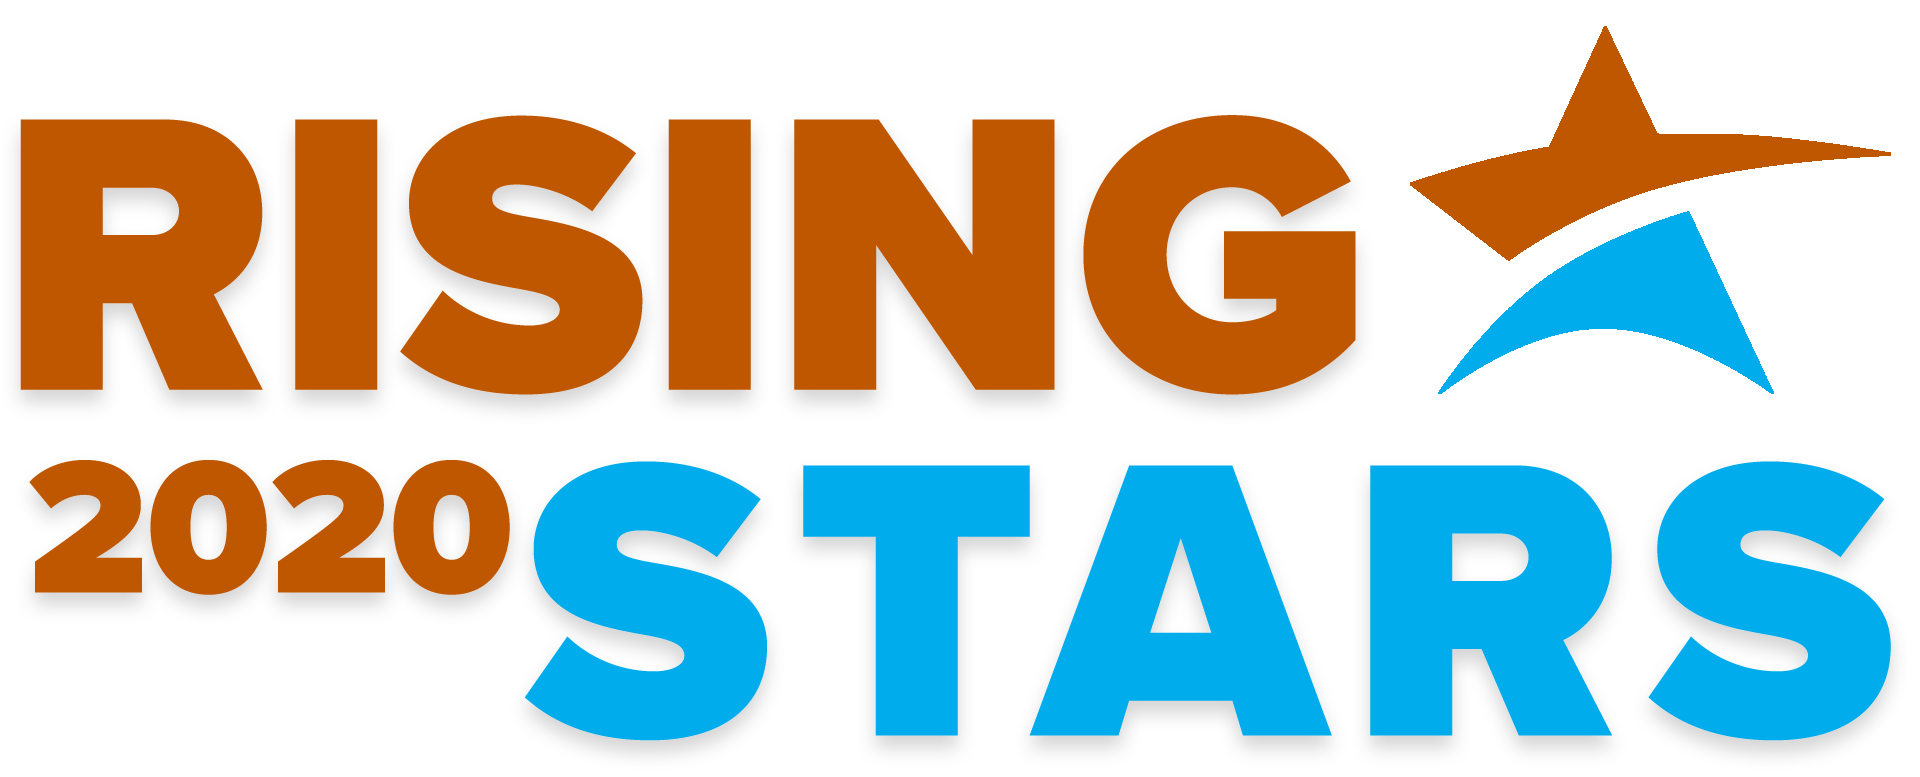 Rising Stars 2020 Event Logo Color